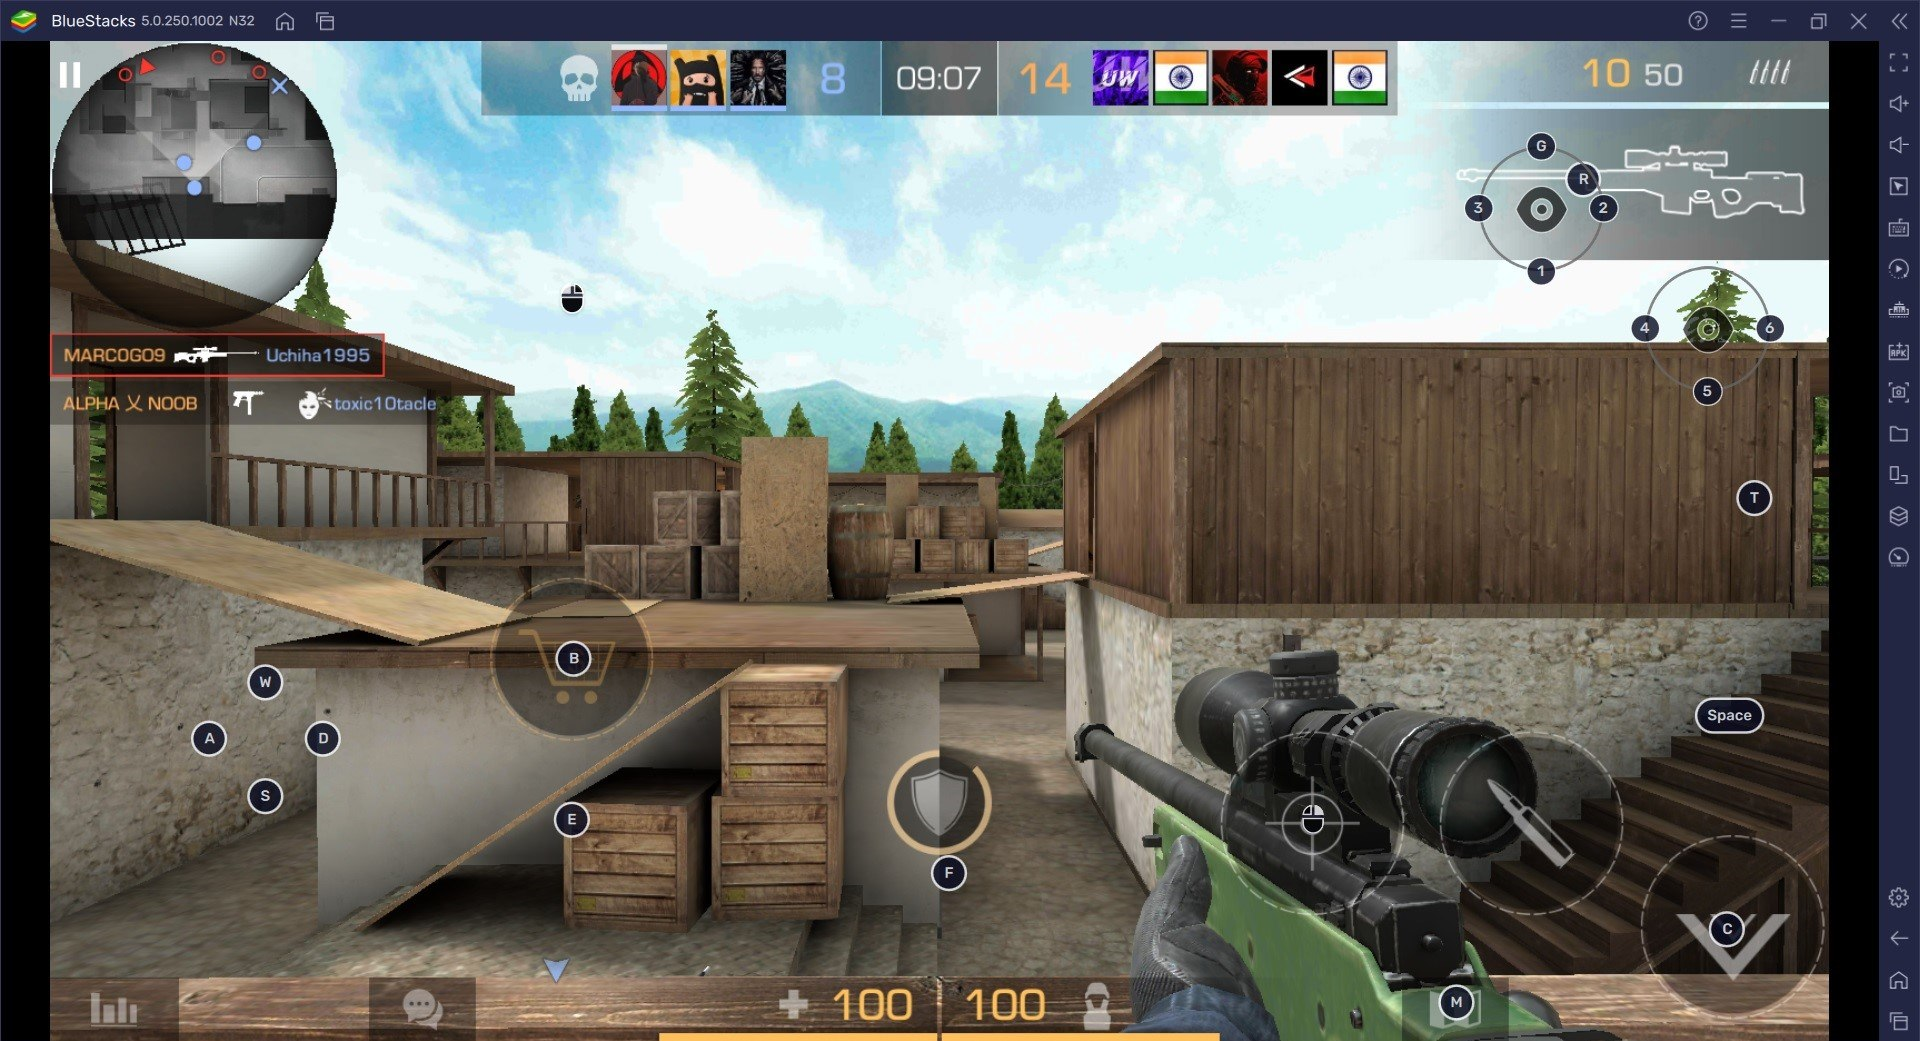 Standoff 2 Guide for Lurkers: Learn How Information Gathering Can Be Utilized